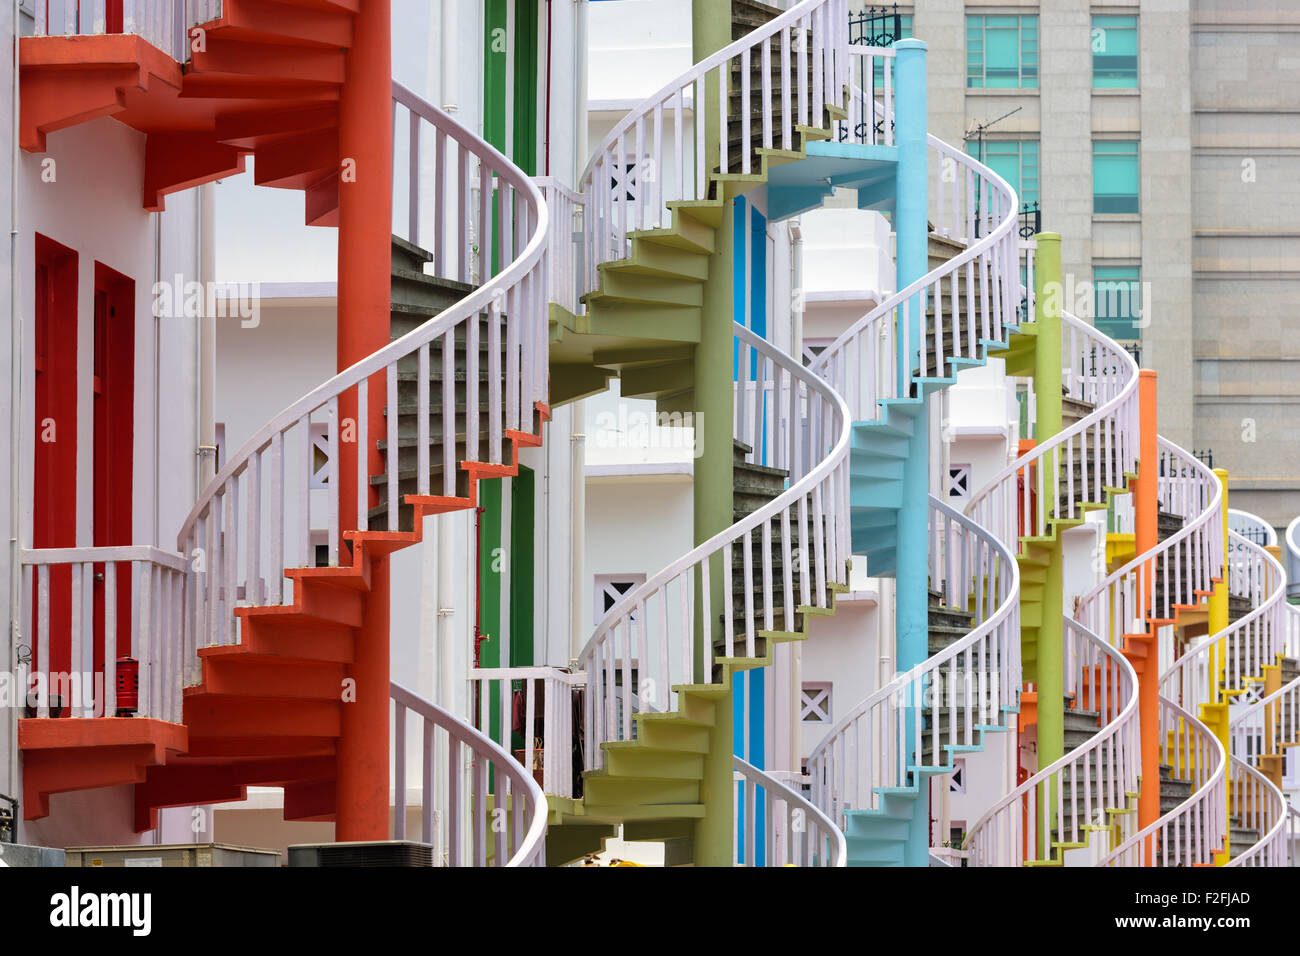 Singapore at Bugis Village spiral staircases. - Stock Image